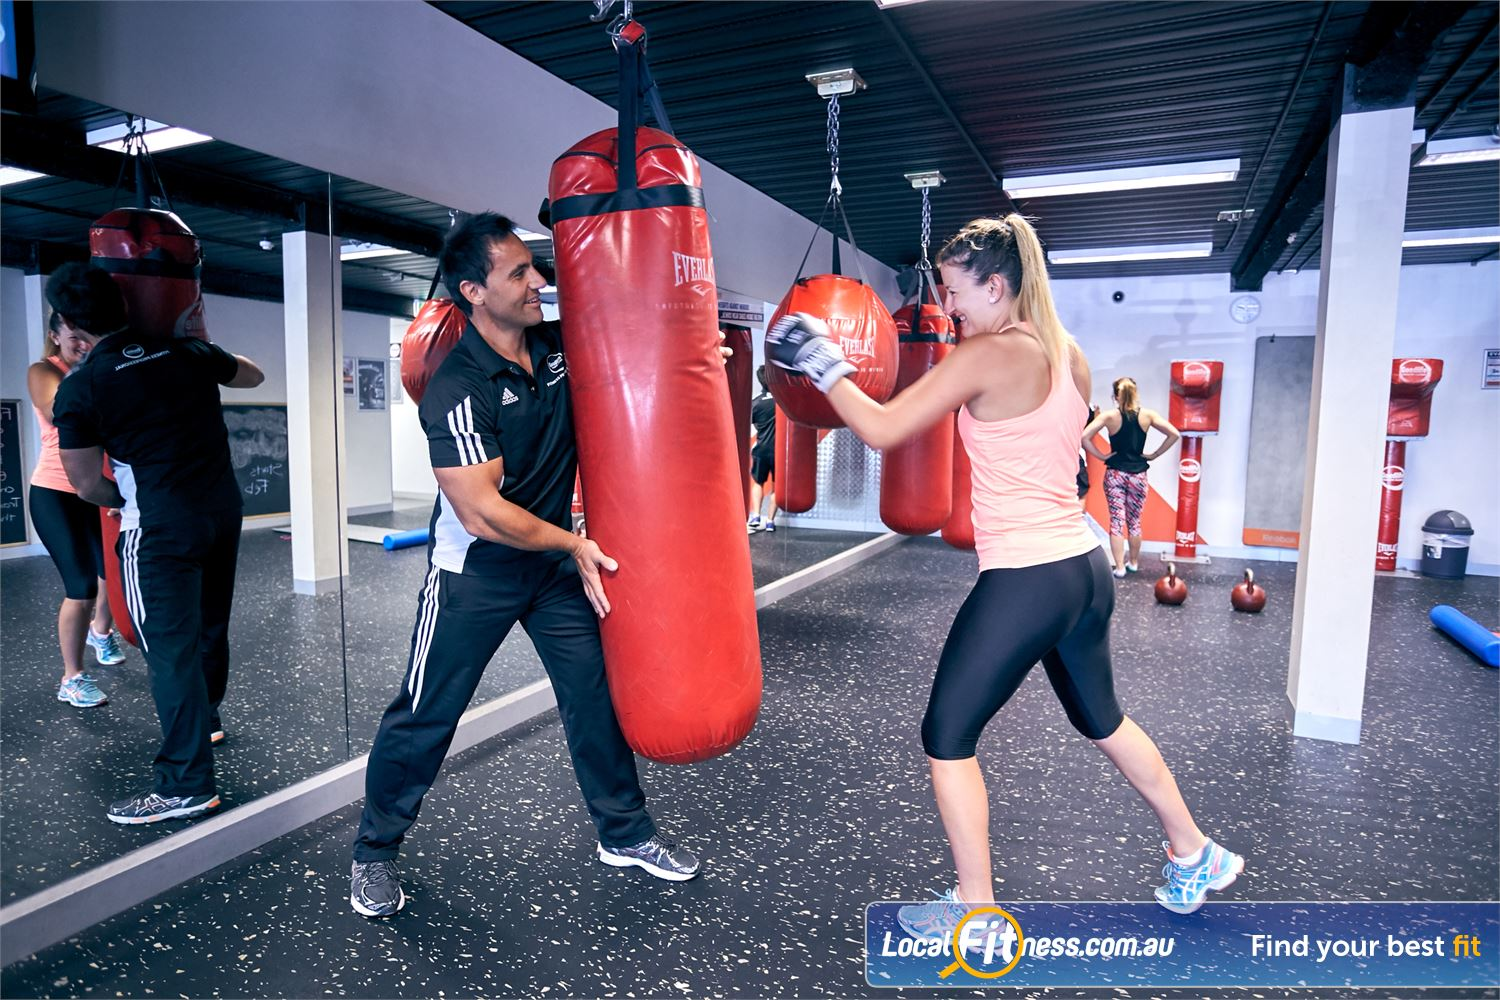 Goodlife Health Clubs Cross Roads Near Unley Park Our Westbourne Park personal trainers can take you through a cardio boxing routine in our boxing studio.